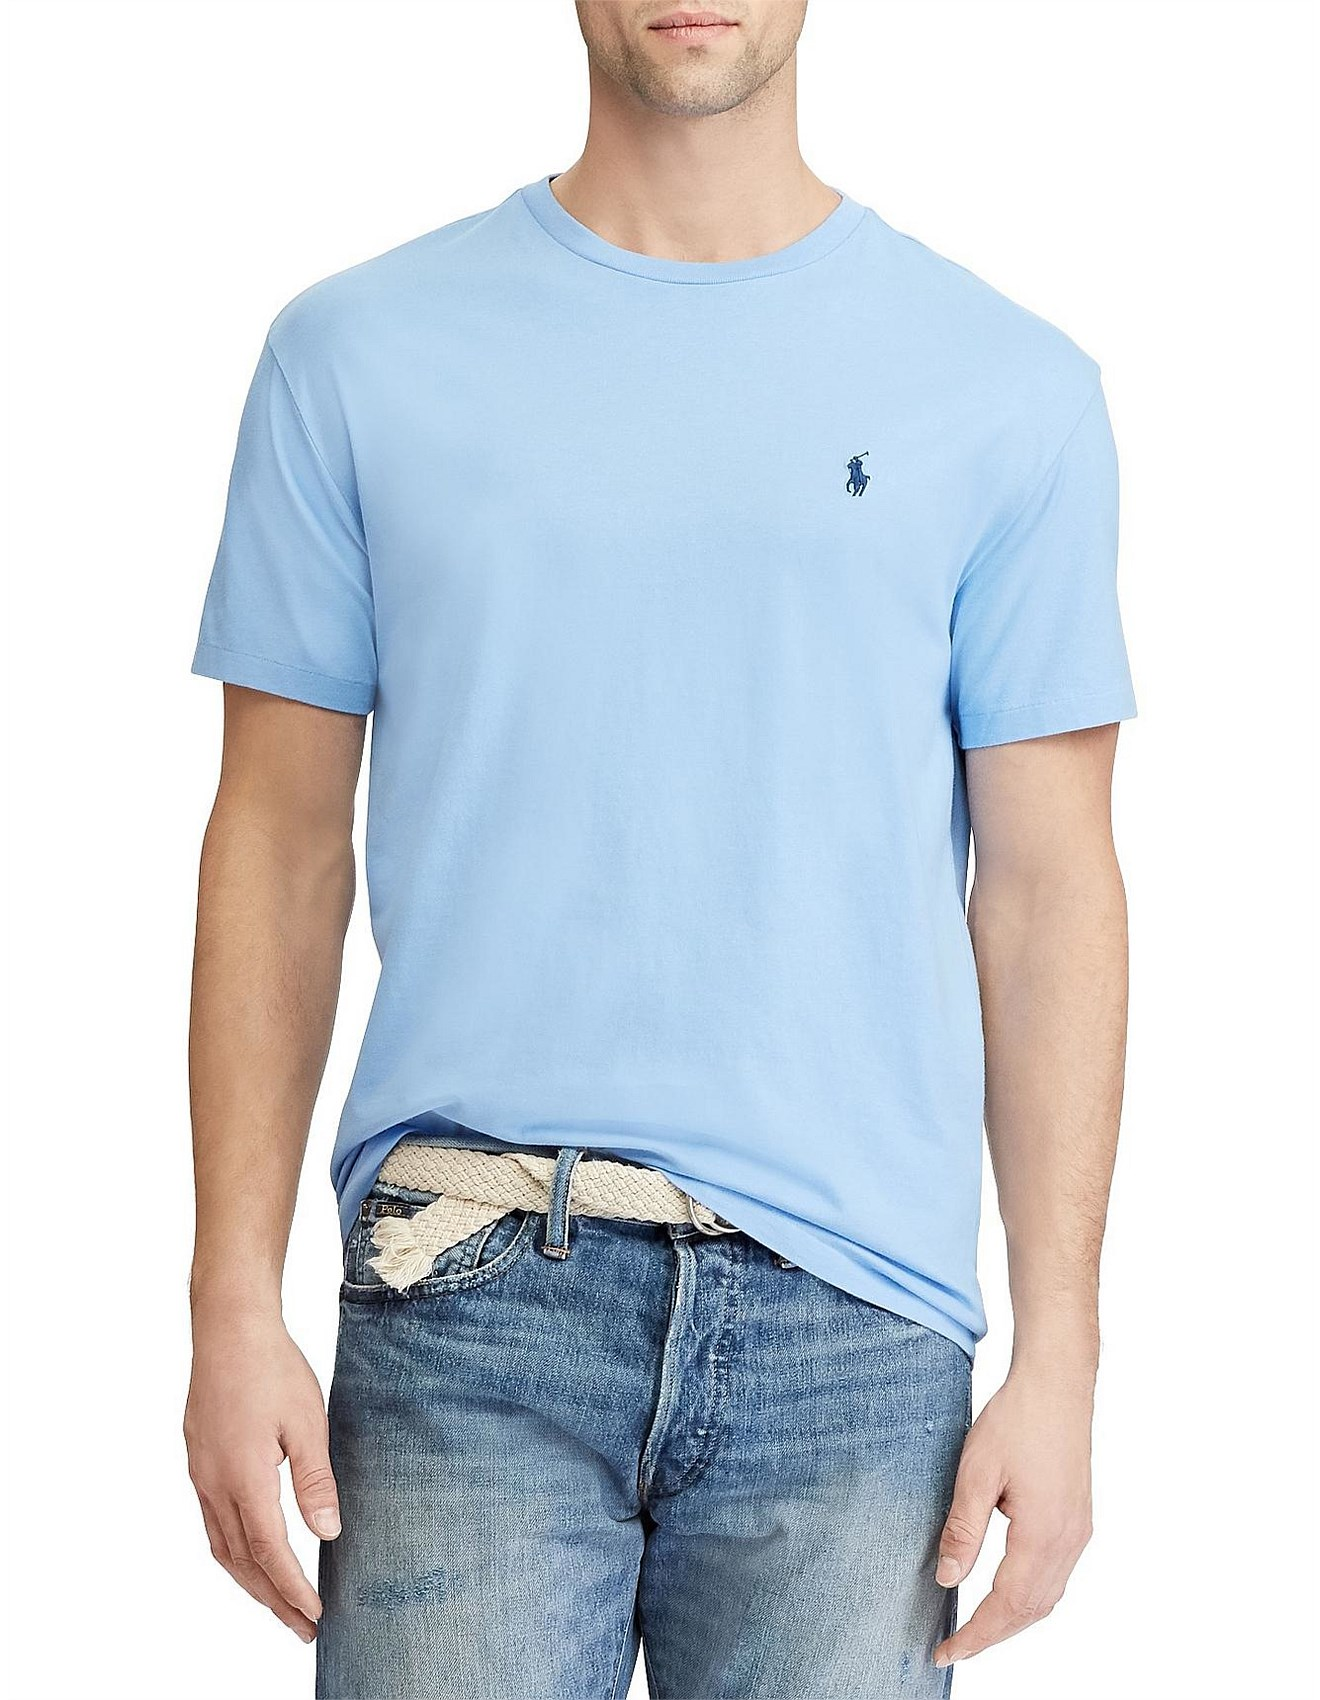 afcca7a17 Mens Custom Slim Fit Cotton T-Shirt. 1  2  3  4. Zoom. Polo Ralph Lauren